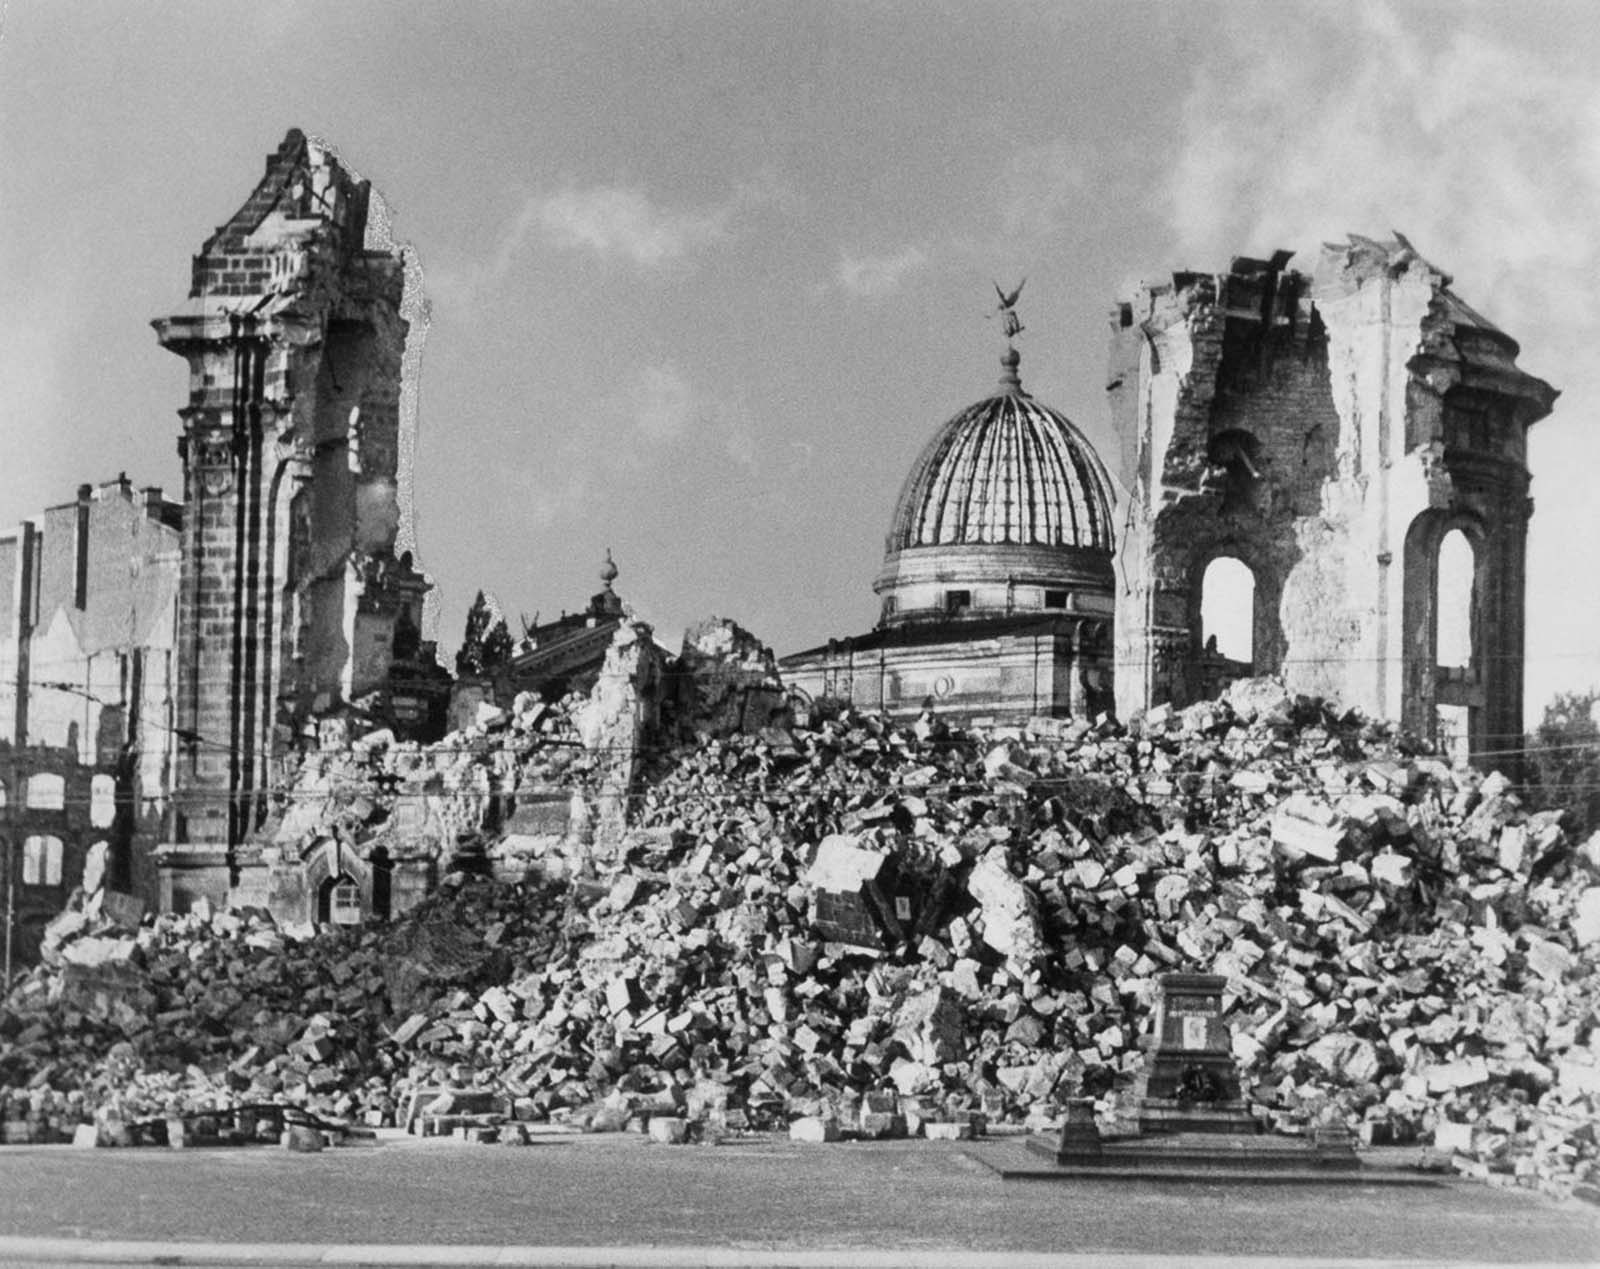 The ruins of the Frauenkirche and the dome of the Kunstakademie.